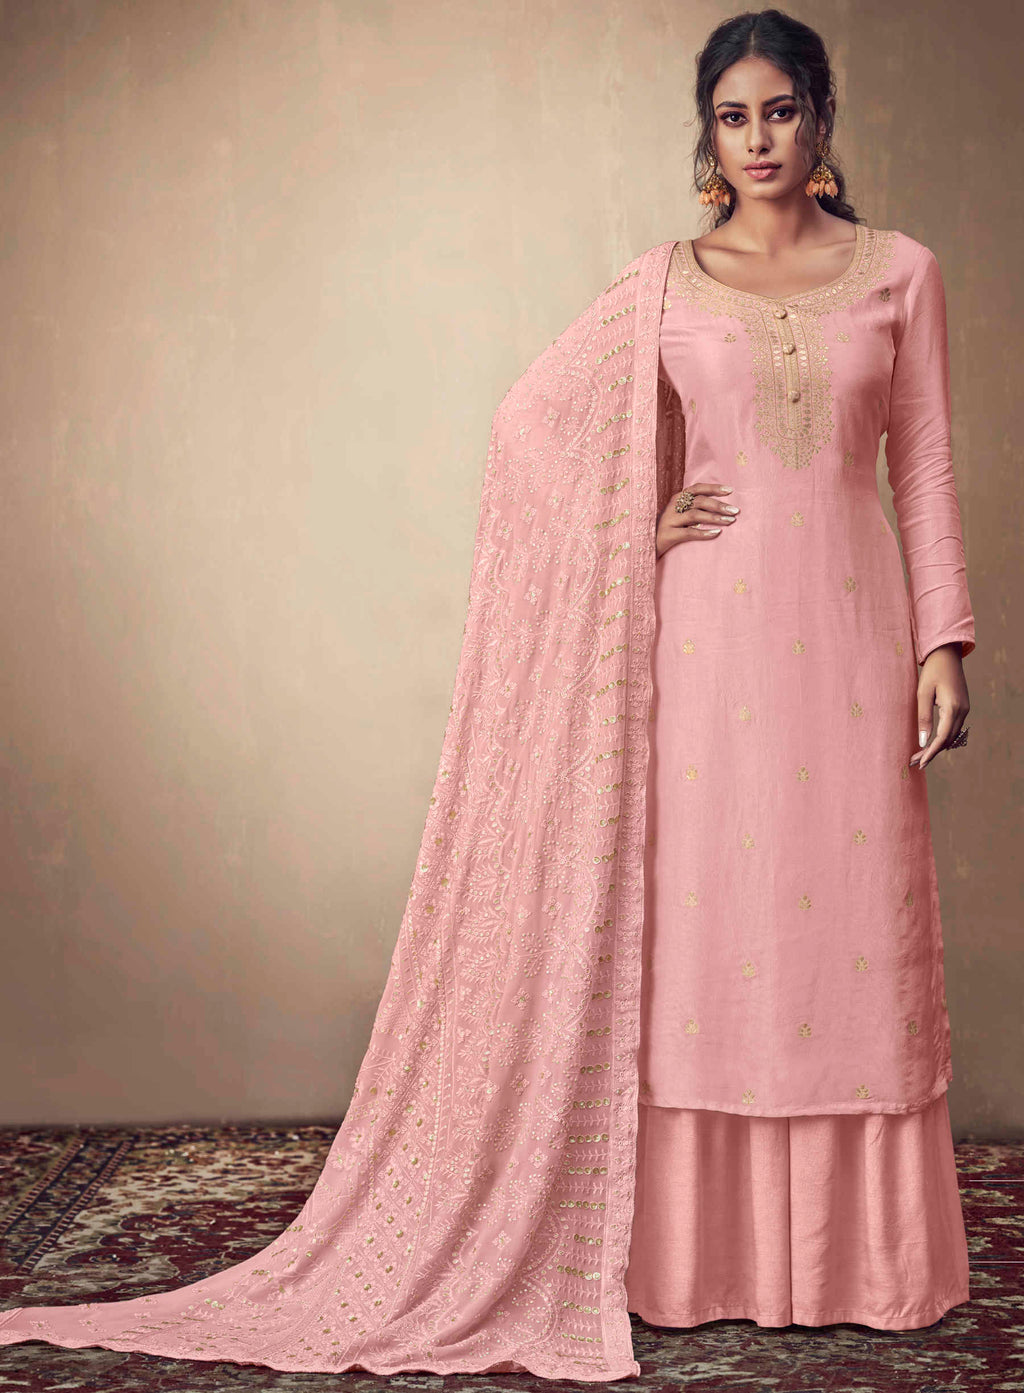 Pink Color Banarasi Jacquard  Designer Semi- Stitched Straight Suit NYF-8772